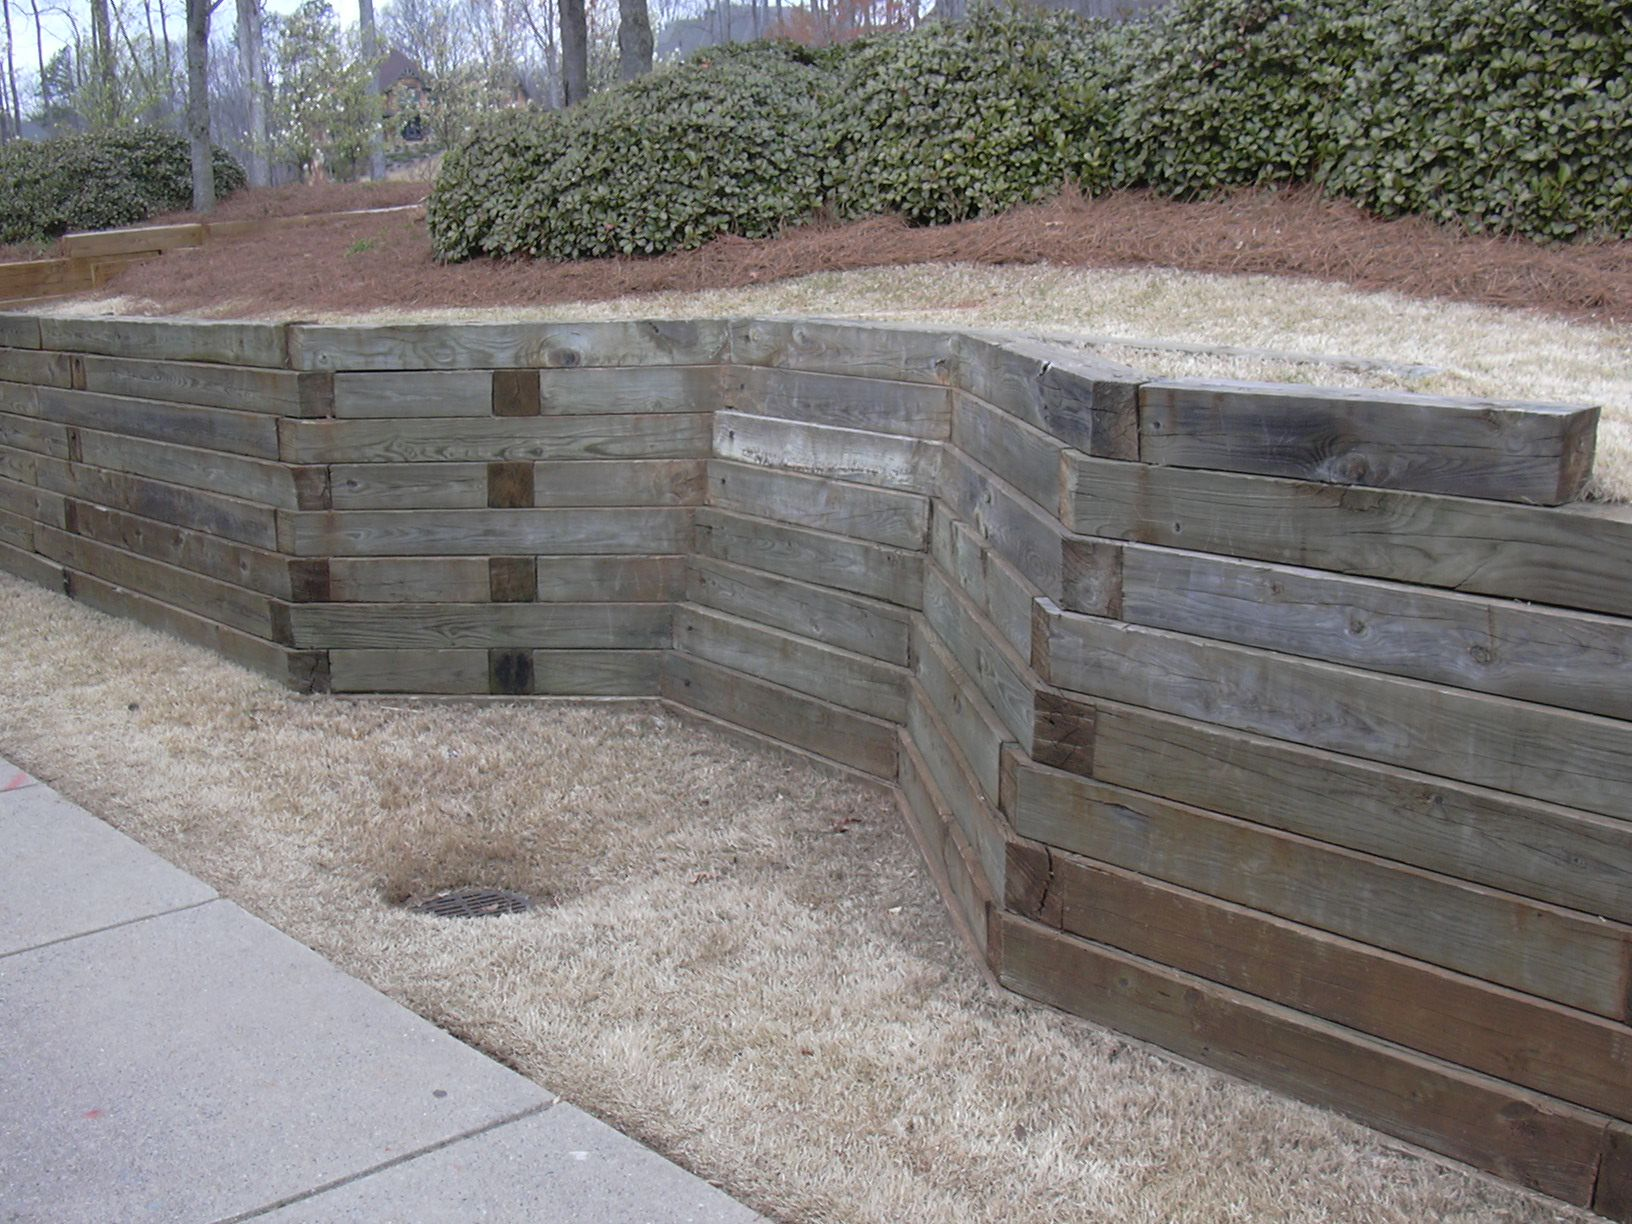 rtaining wall materials atlanta structural consulting inspections services landscaping retaining wallslandscaping ideasbackyard - Landscape Design Retaining Wall Ideas